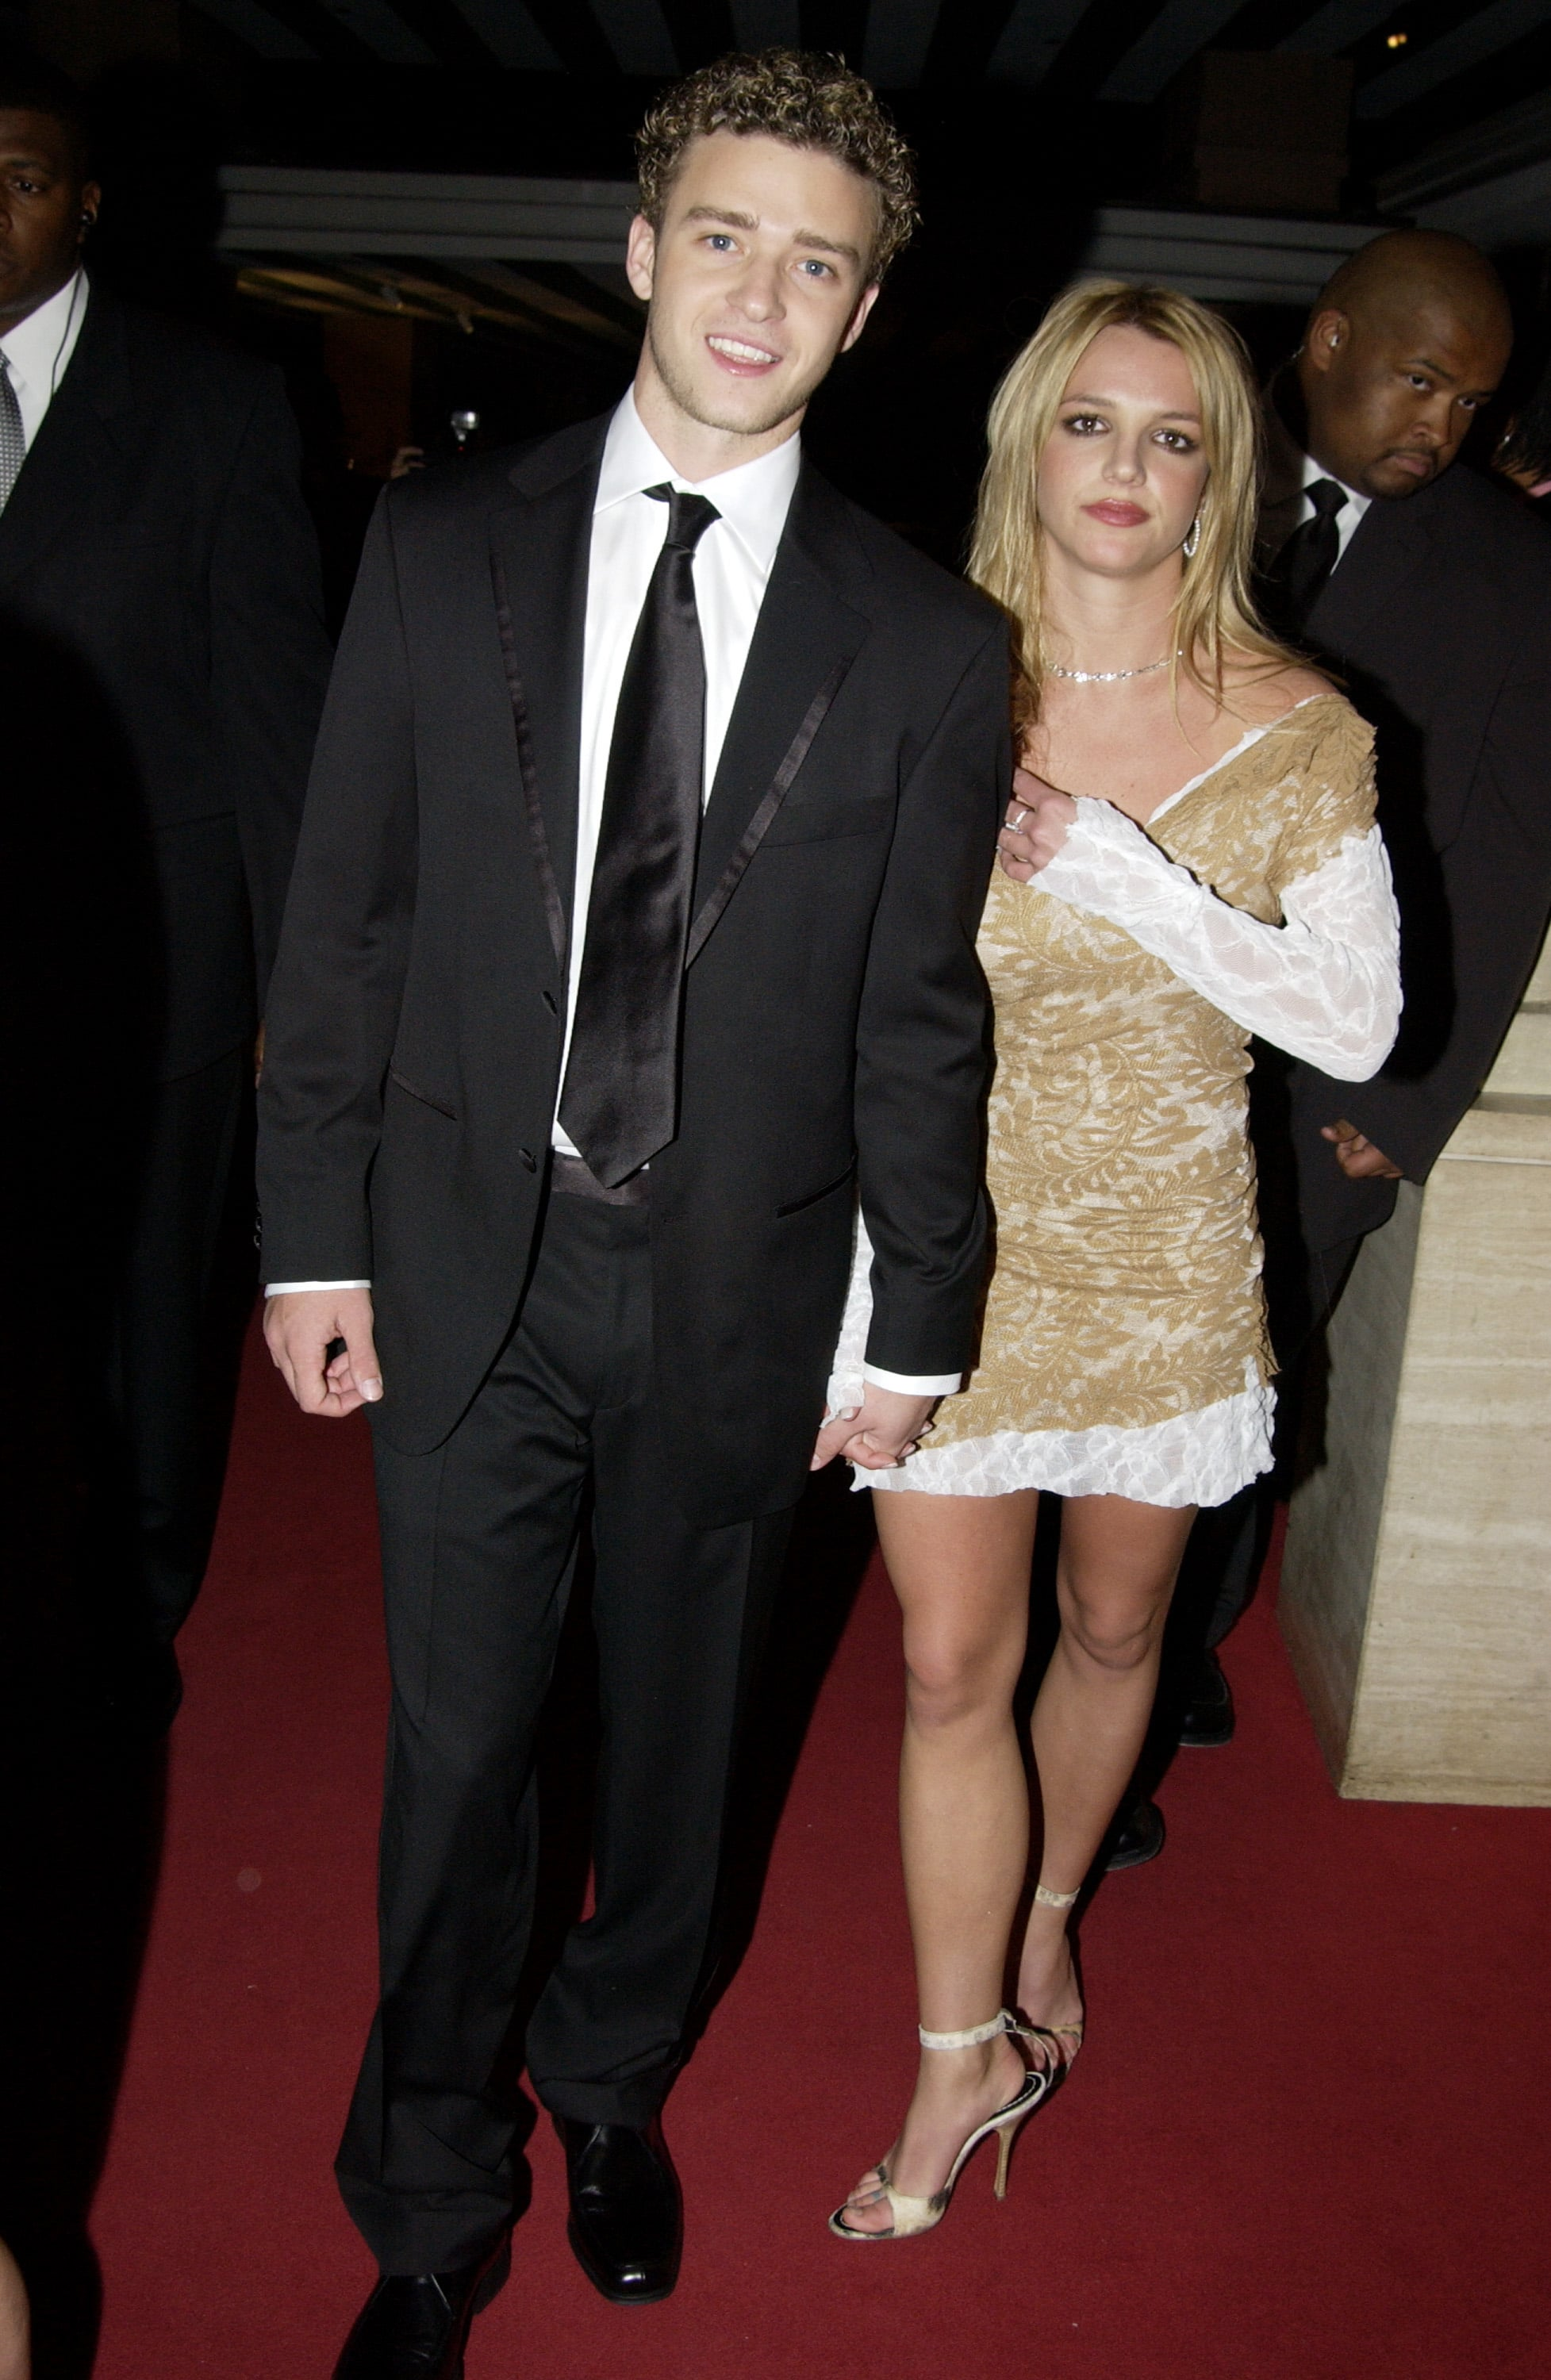 Justin hit the town with then-girlfriend Britney Spears in a black suit-and-tie look back in 2002.